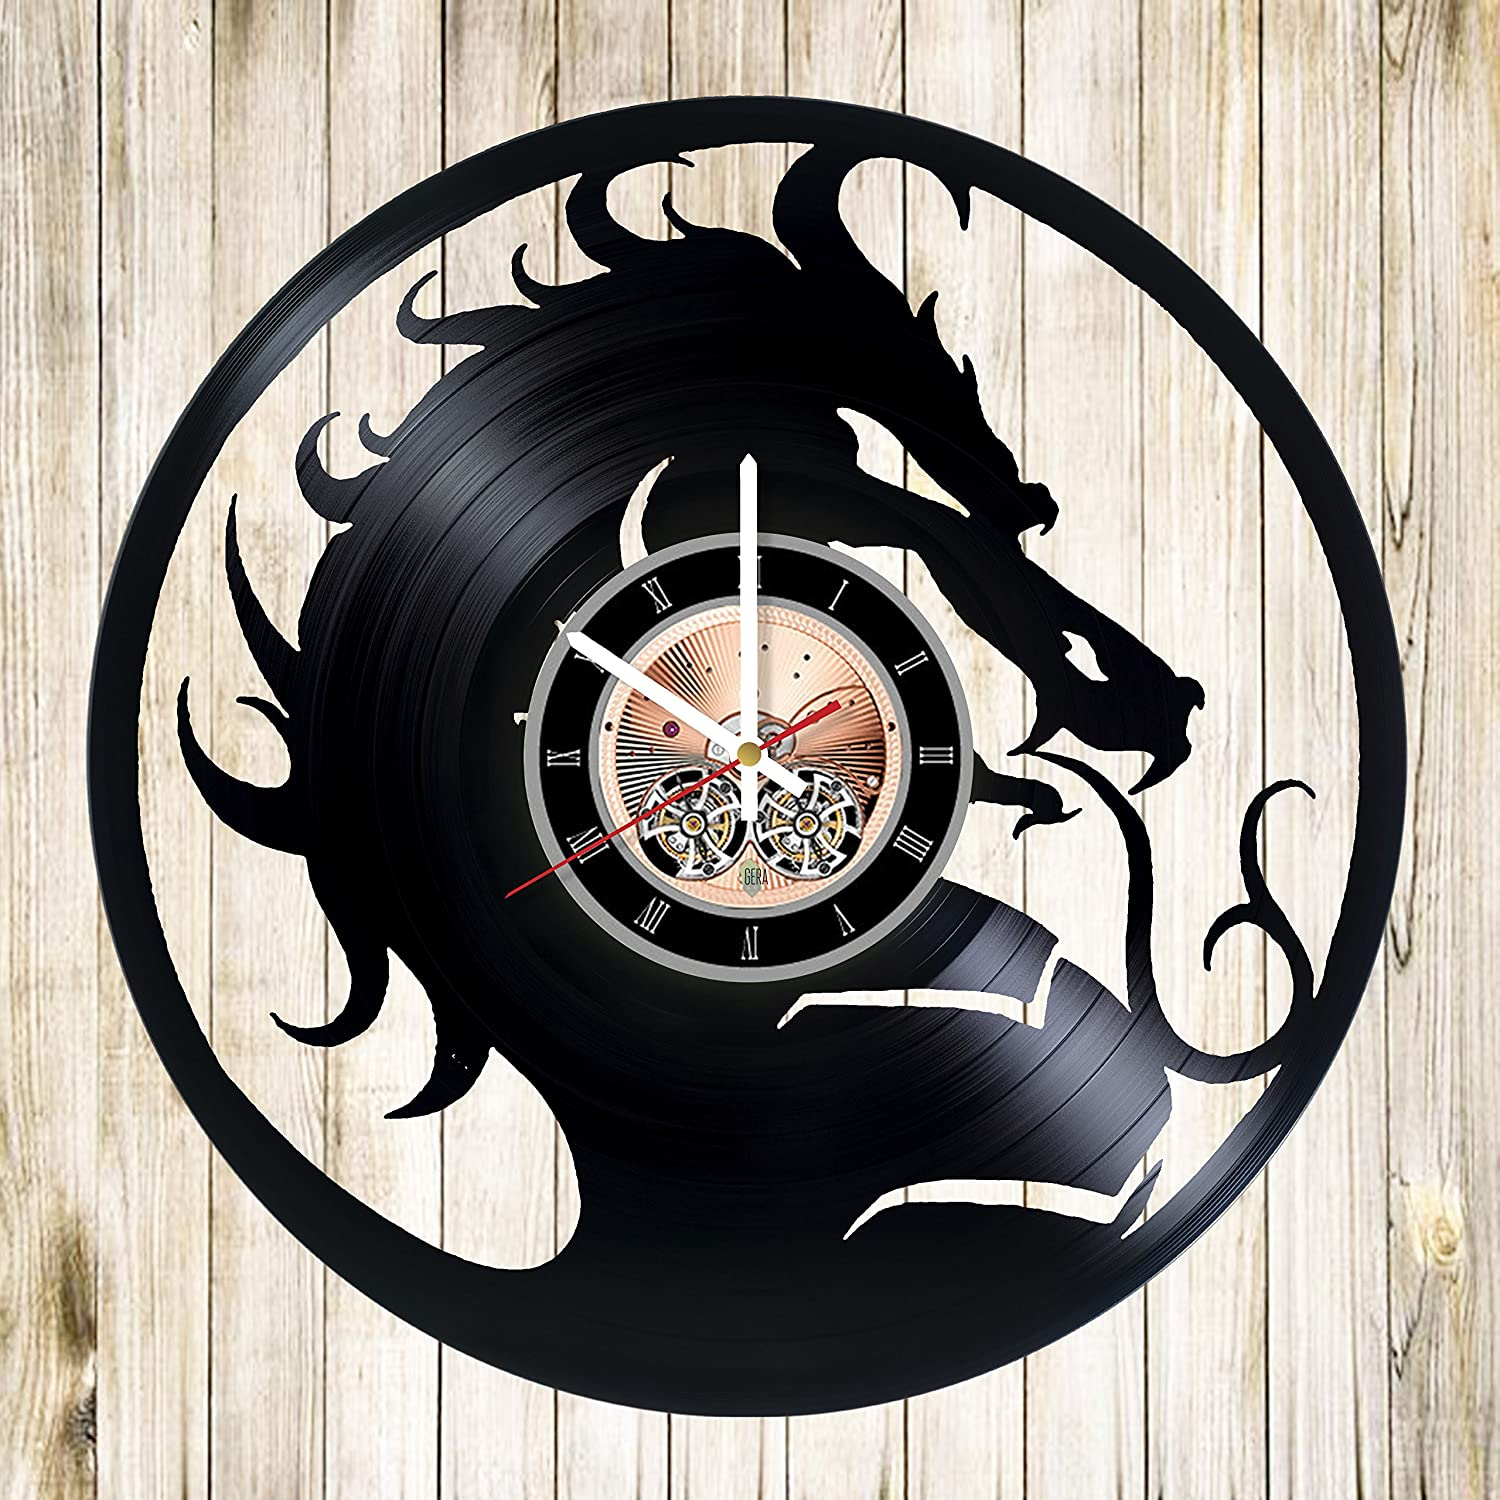 Mortal Kombat Vinyl Record Wall Clock – Play Room wall decor – Gift ideas for teens, boys, brother – Game Unique Art Design